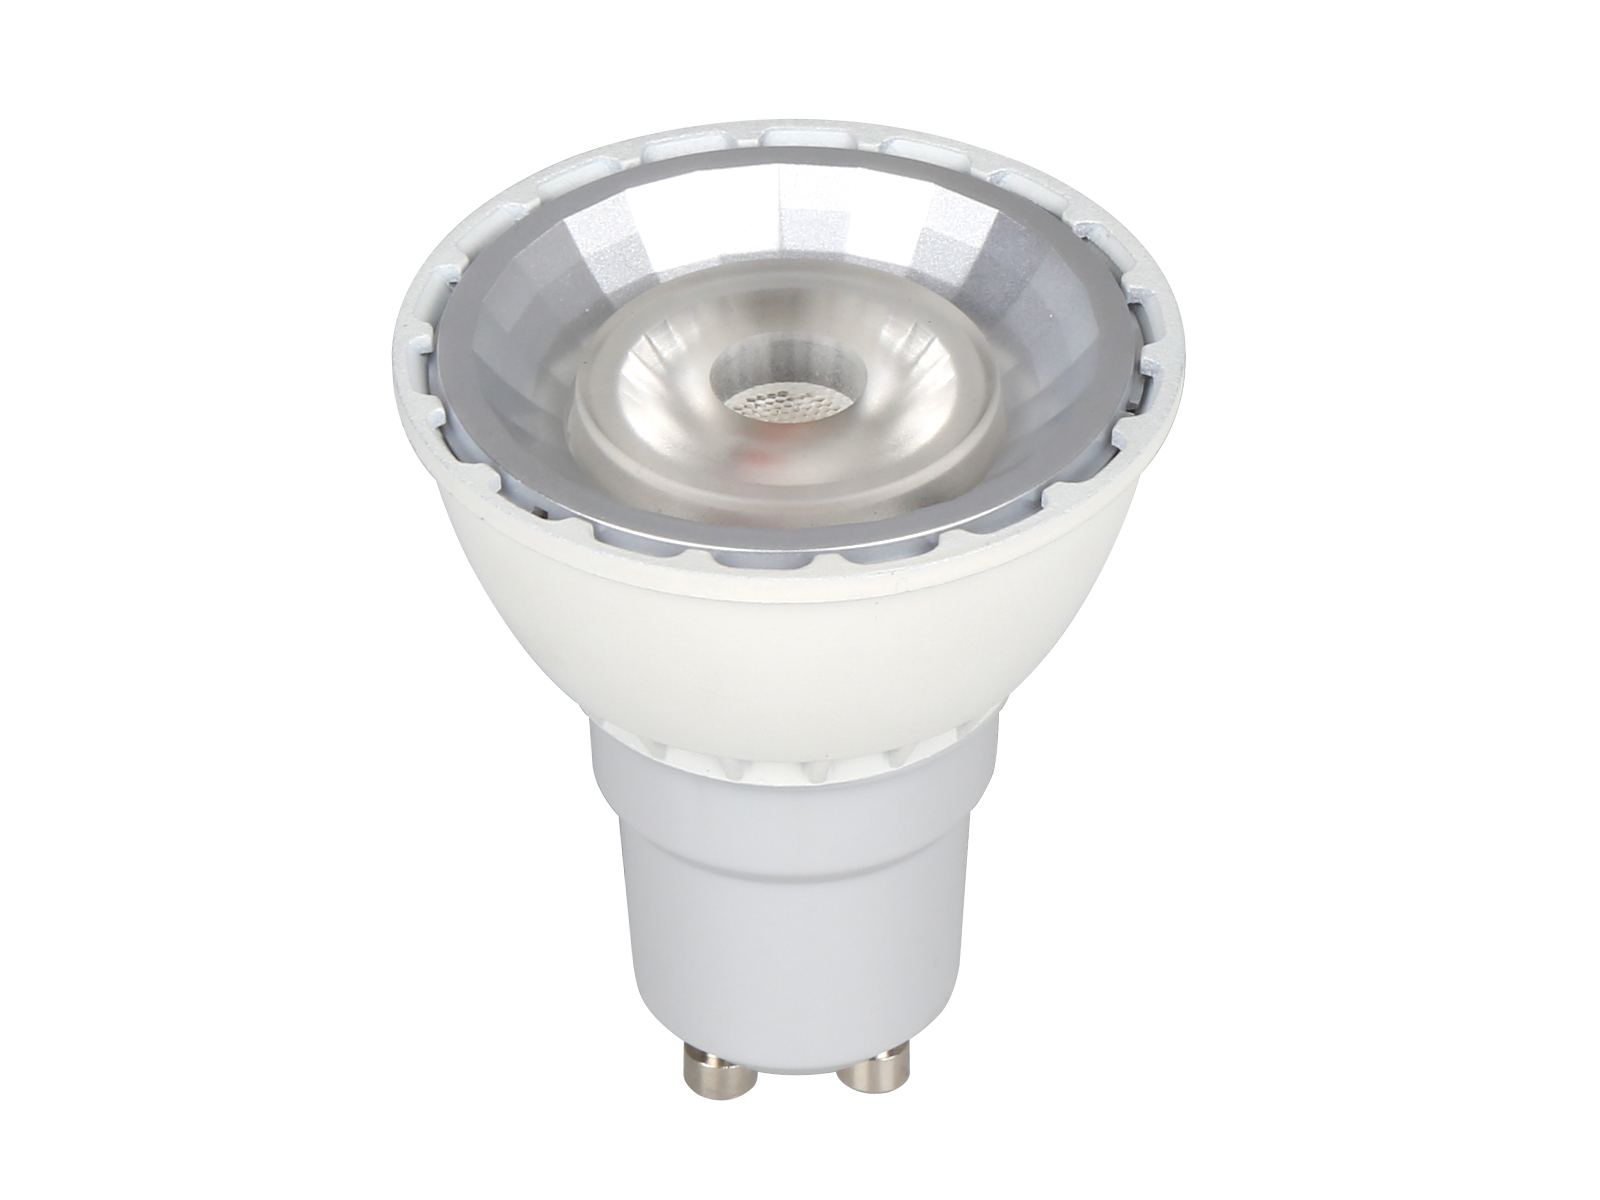 SP48 GU10 LED Spotlight